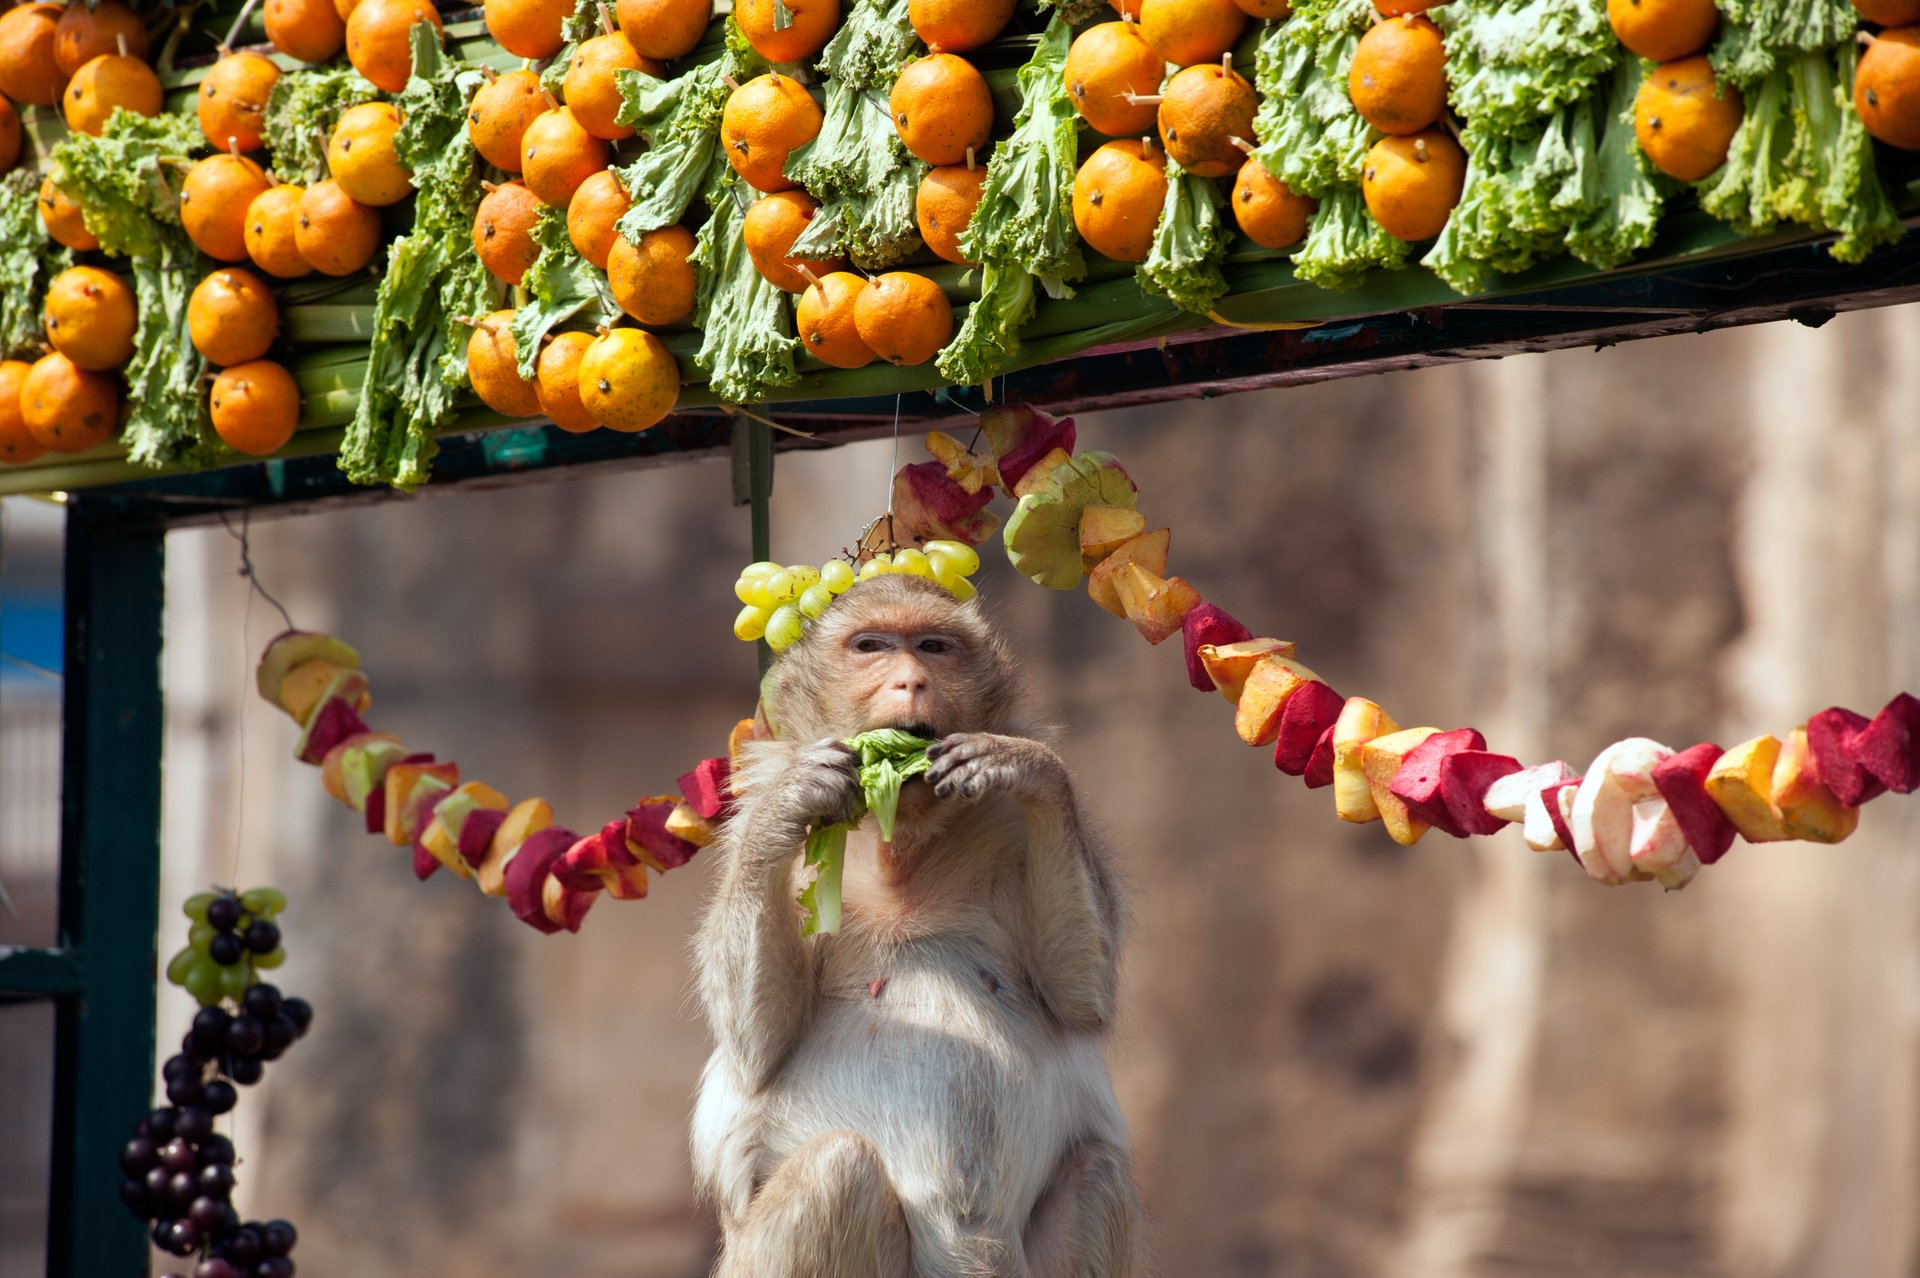 Lopburi Monkey Banquet Festival in Thailand 2019 - Best Time